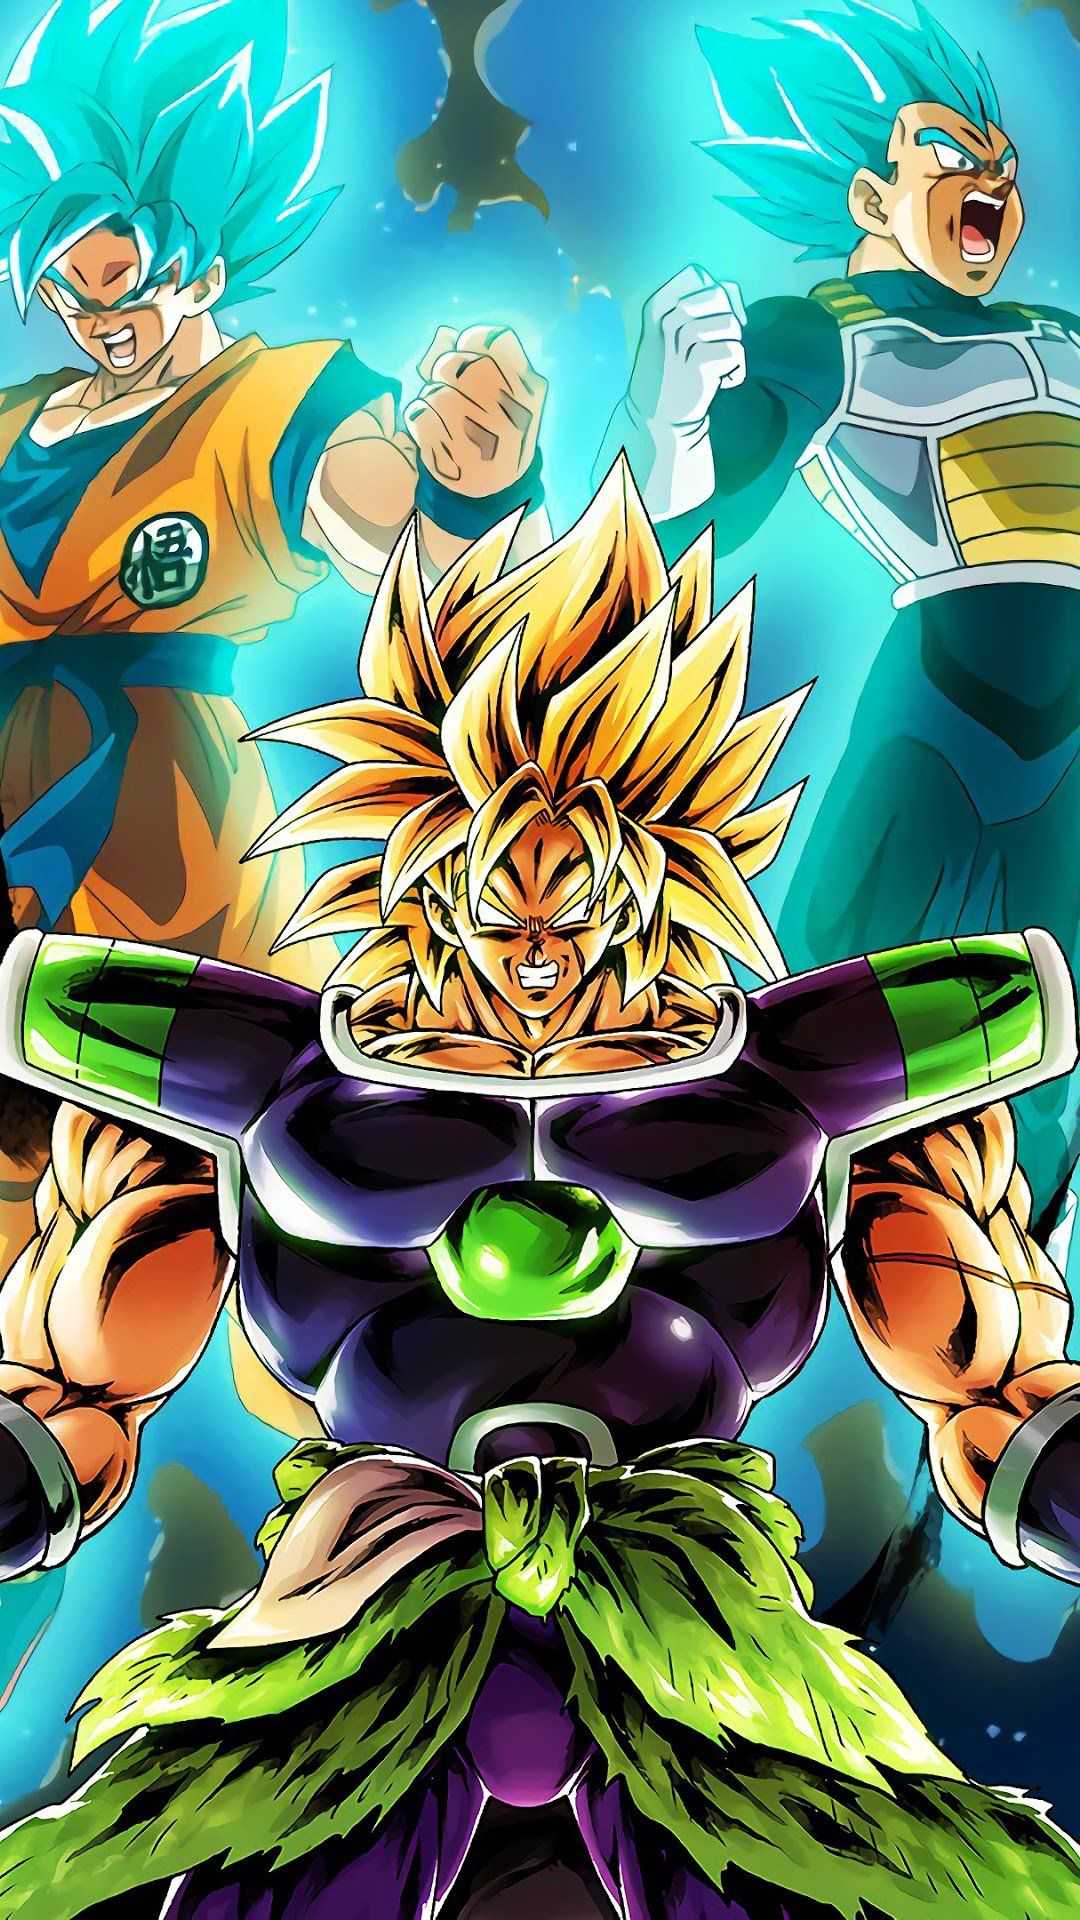 Dragon Ball Z Aesthetic iPhone Wallpapers - Wallpaper Cave